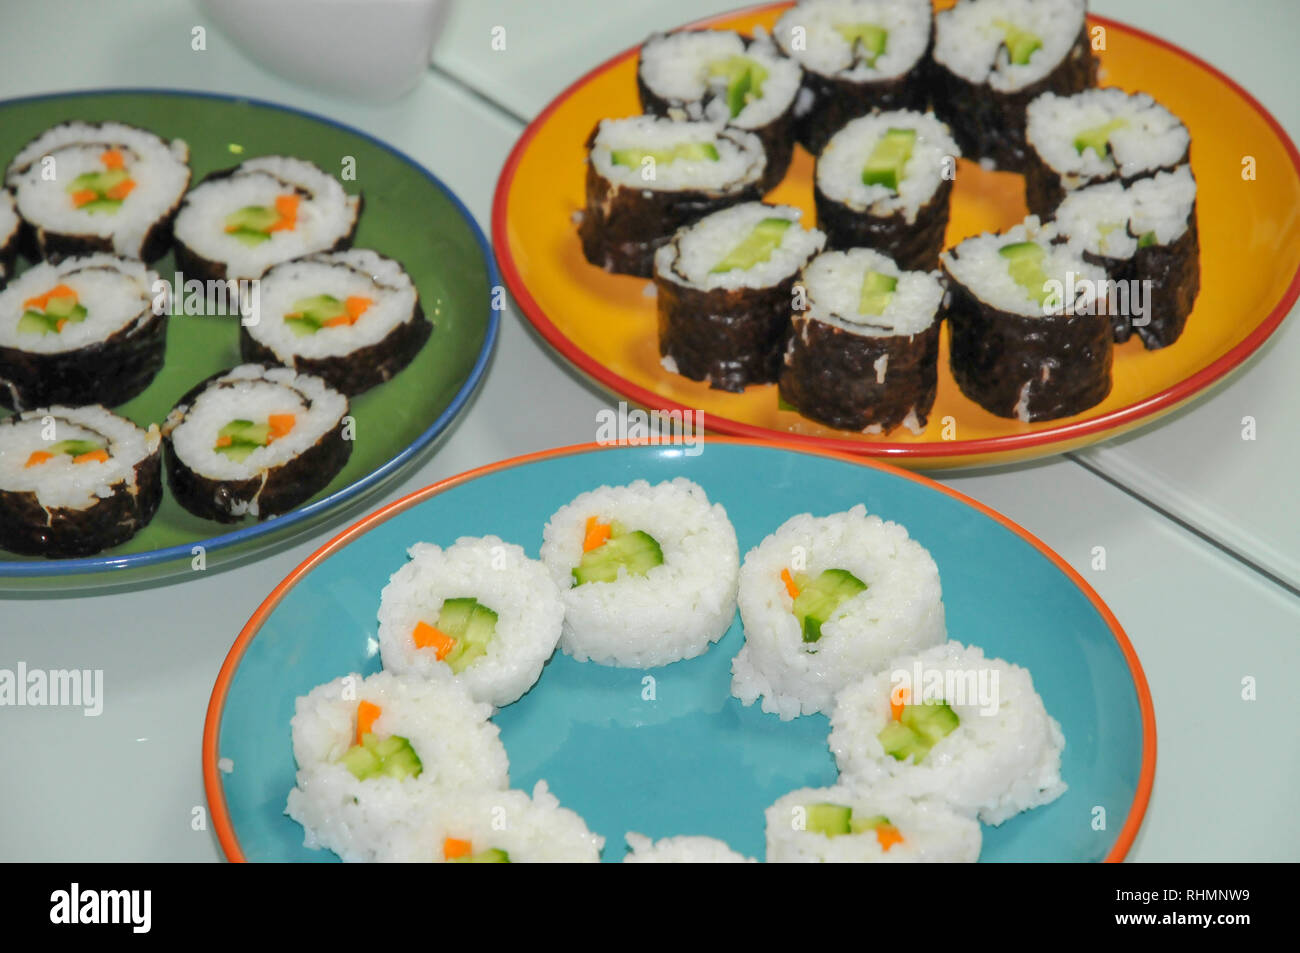 Platters of vegetarian sushi vegetables and rice wrapped in seaweed - Stock Image